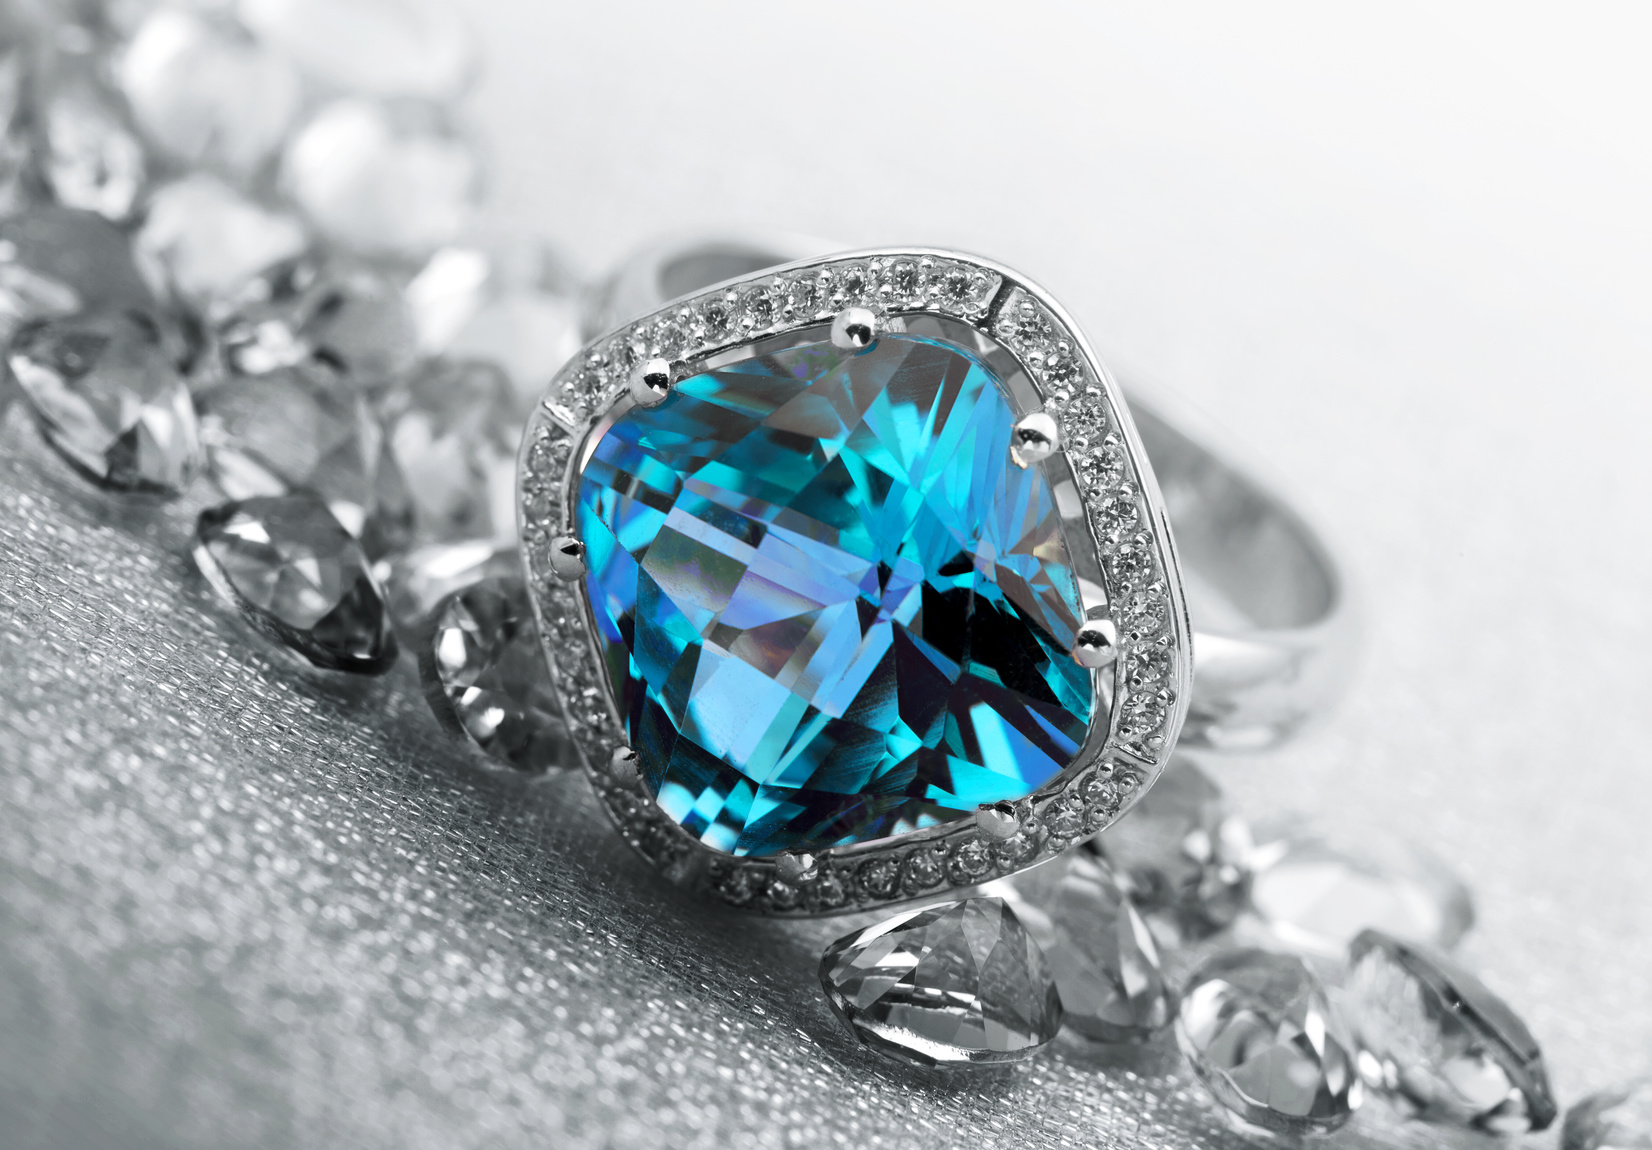 3 Reasons Why Jewelry Makes the Perfect Gift